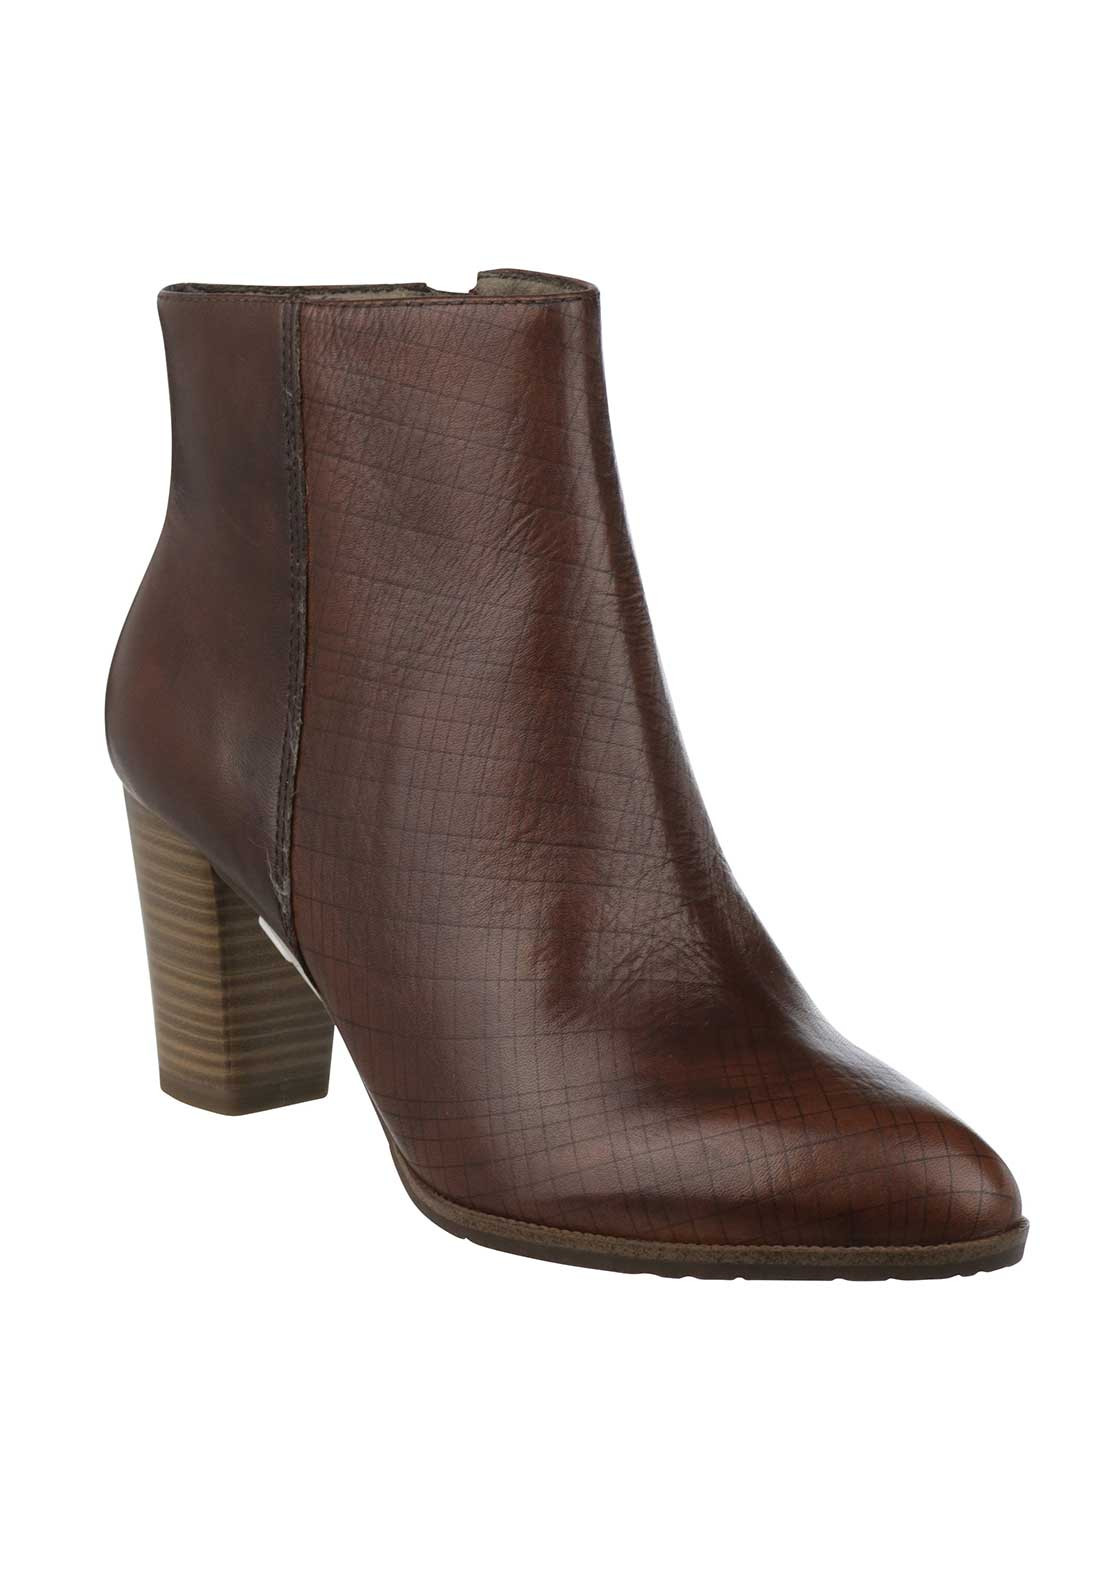 Tamaris Leather Textured Ankle Boots, Brown